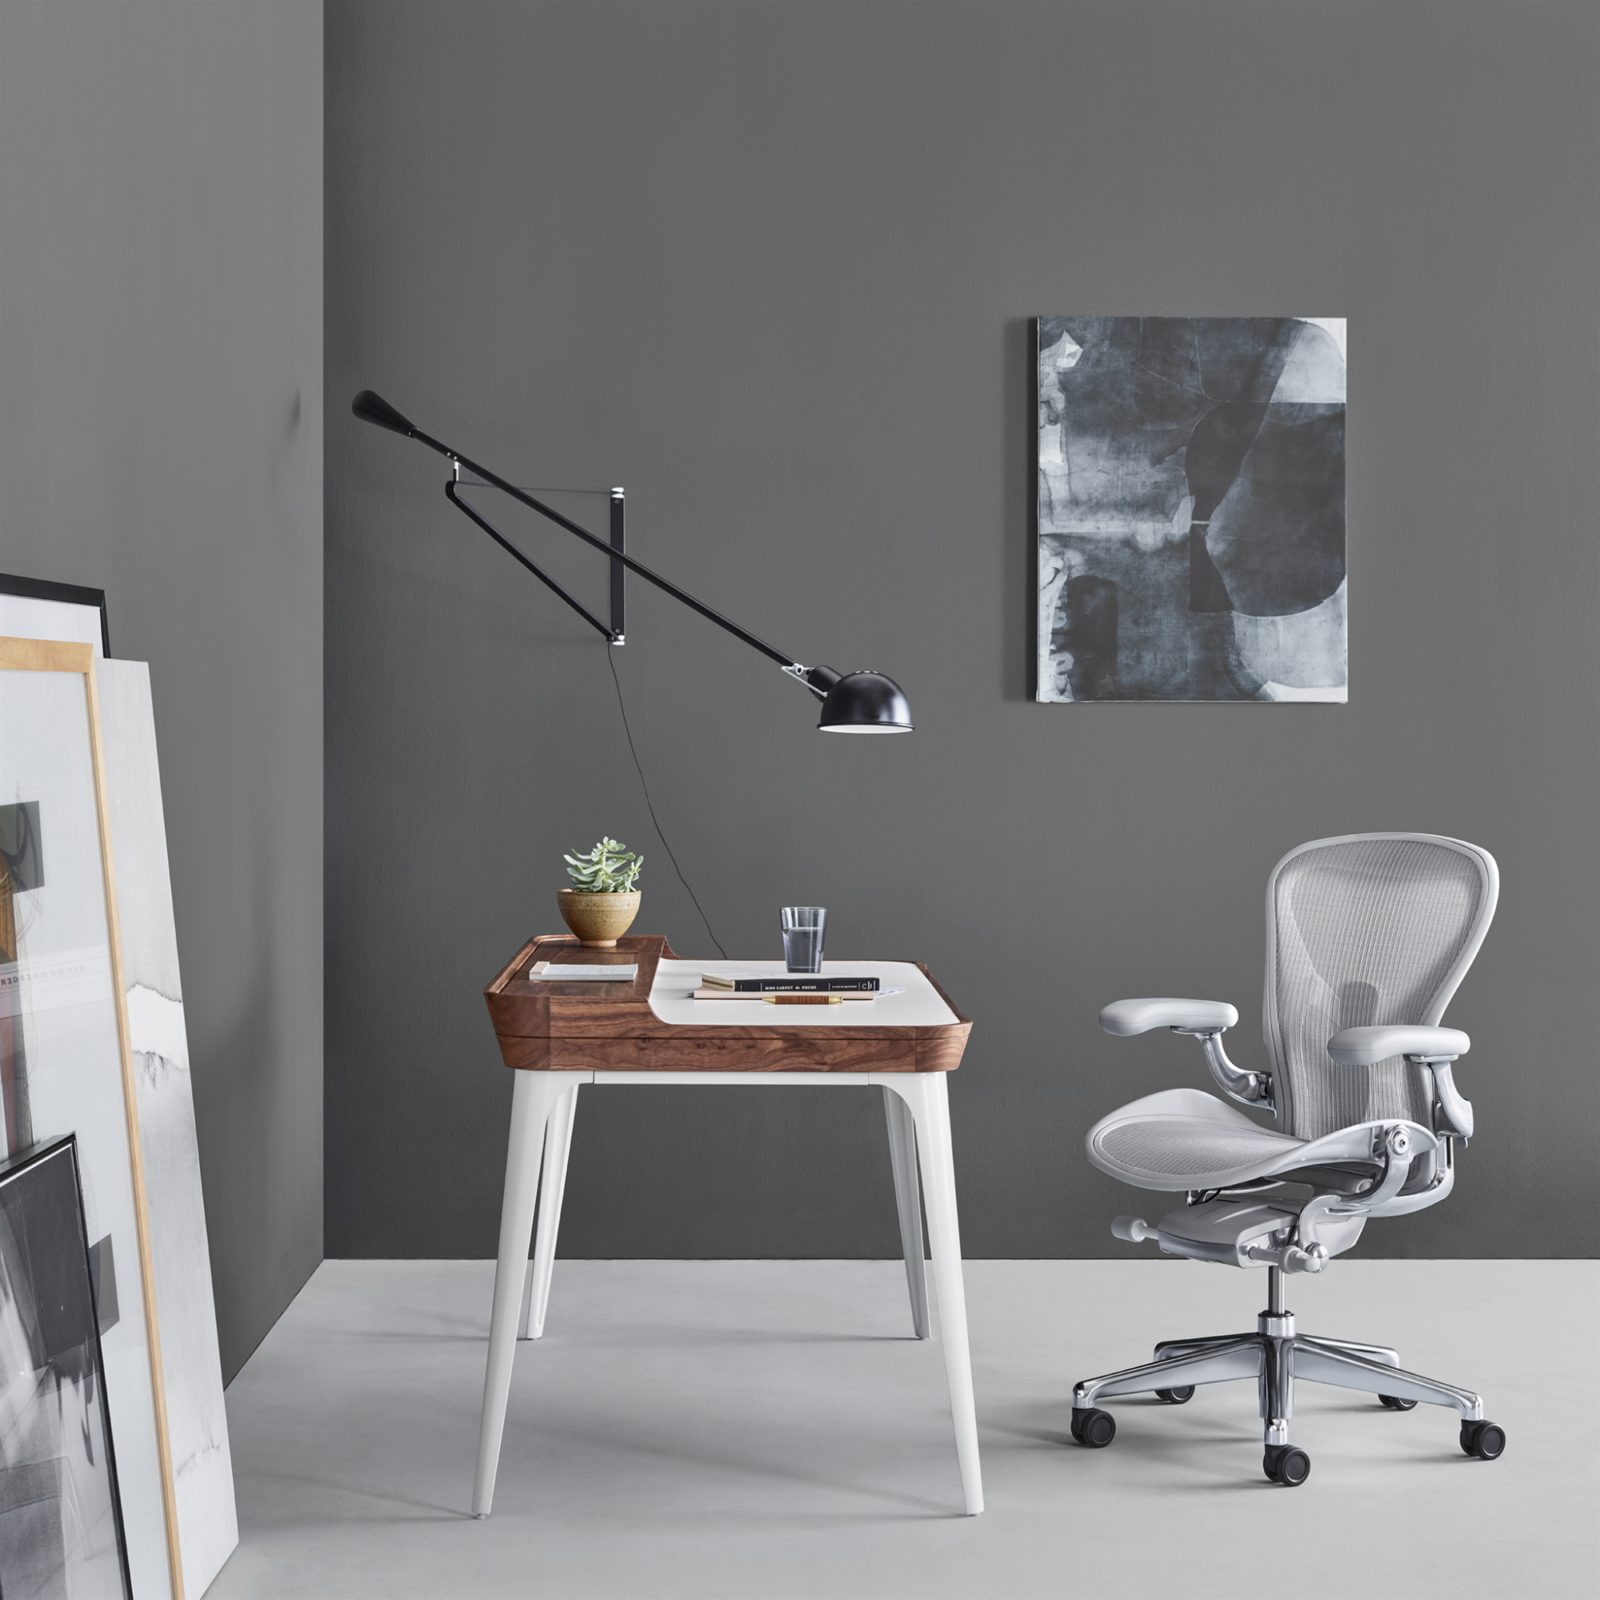 A home office with an Airea Desk in front of a mineral Aeron Chair with a black light fixture overhead.